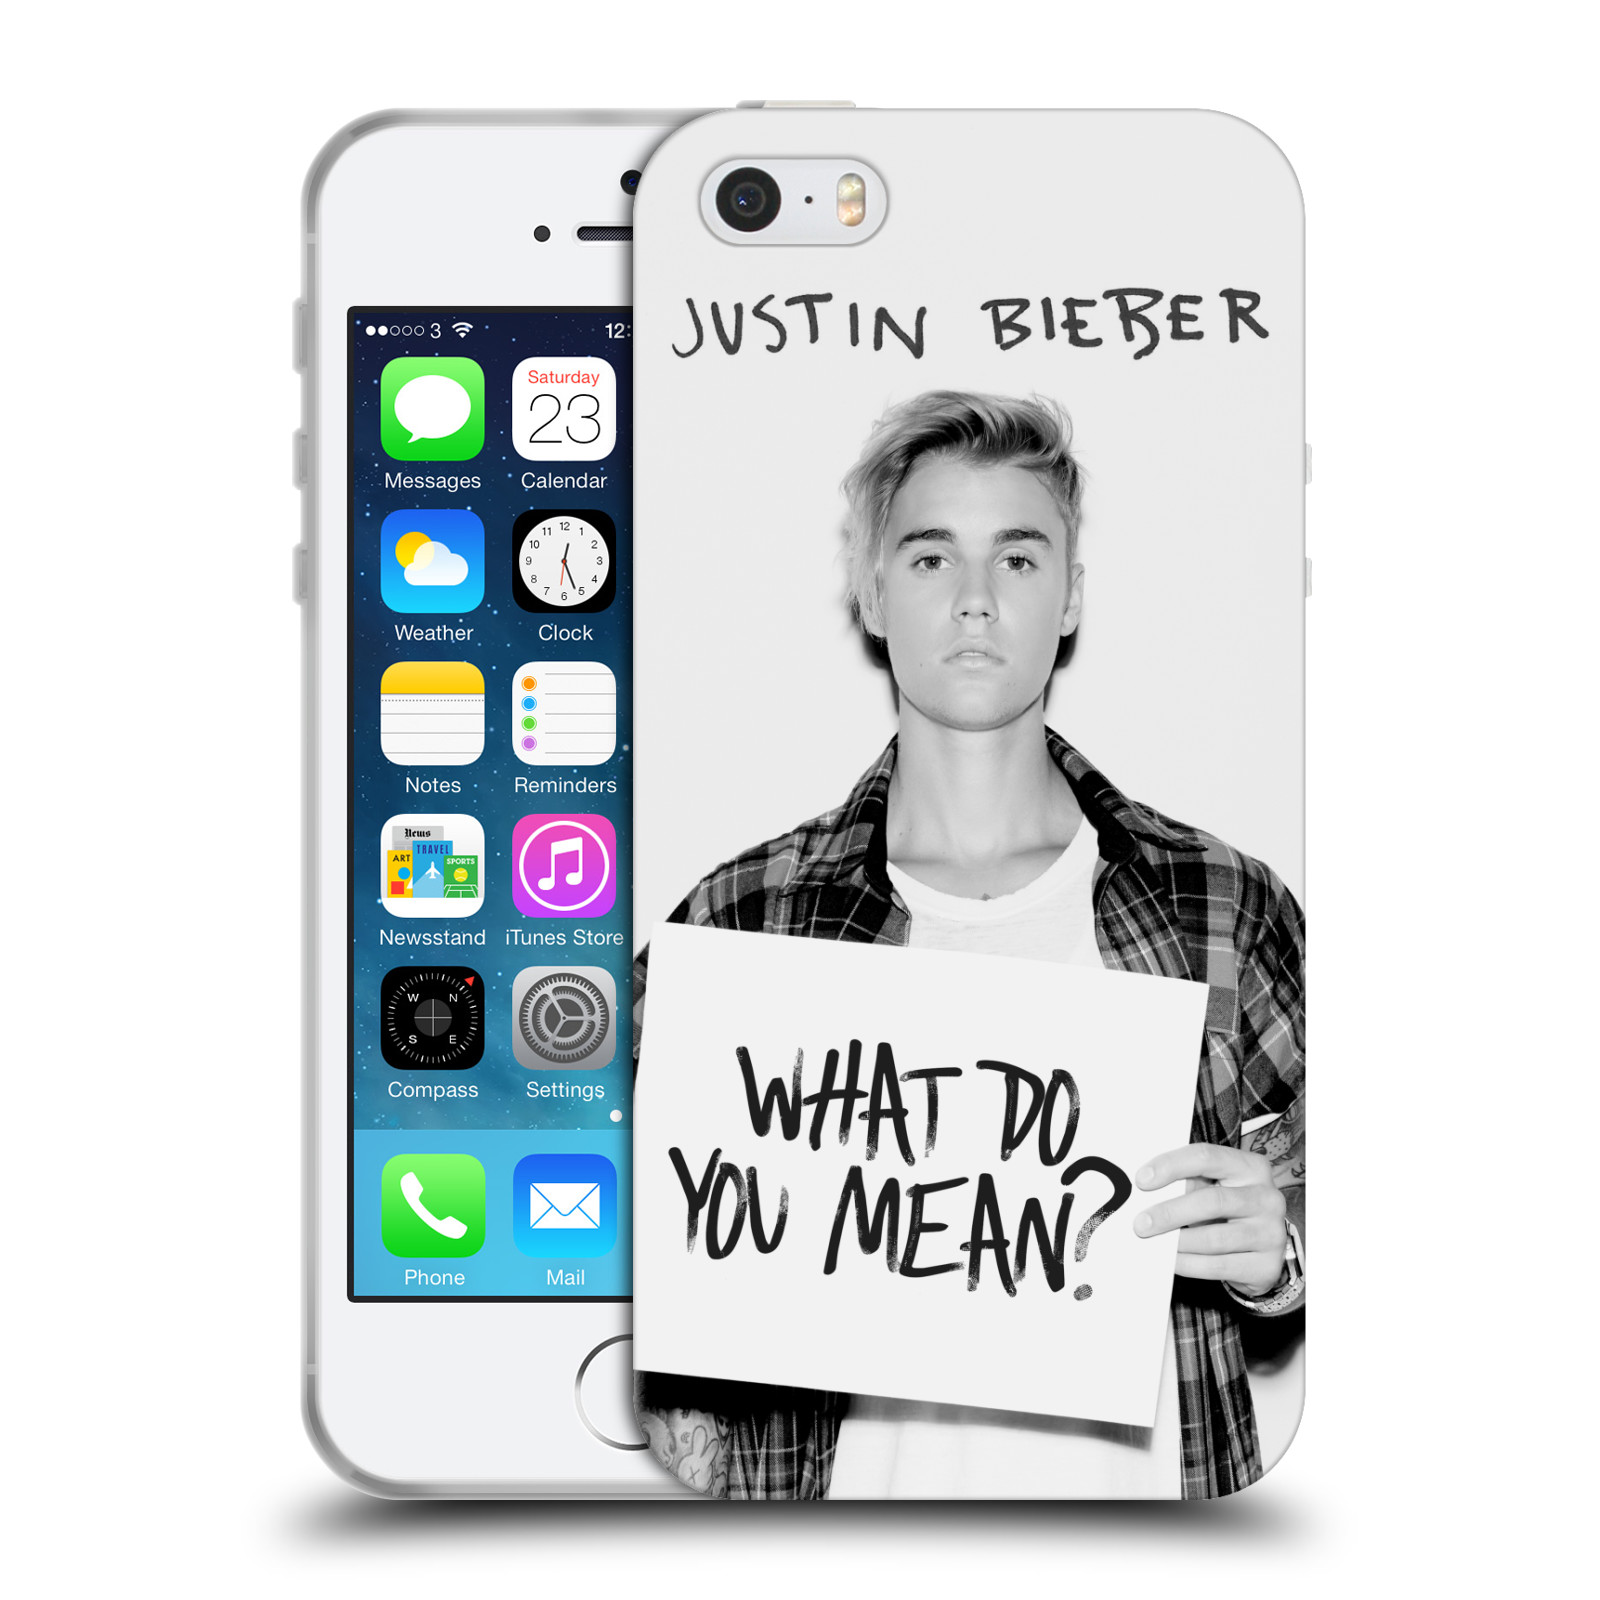 HEAD CASE silikonový obal na mobil Apple Iphone 5 / 5S originální potisk Justin Bieber What do you mean